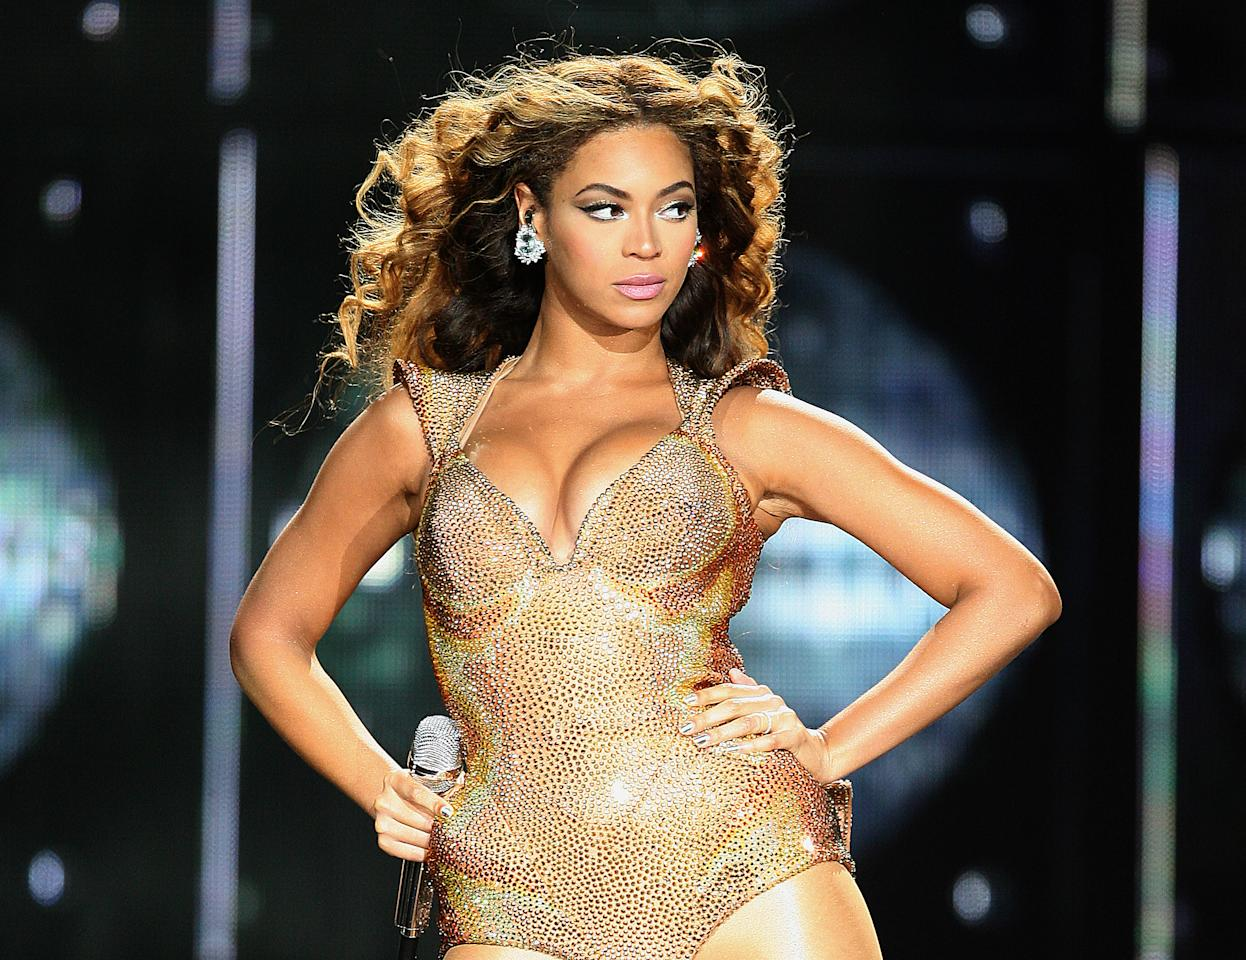 """In case you somehow missed it, Beyoncé's visual album<em>Lemonade</em>was as political and woke as it was stunning and provocative. Bey drew on """"the South, New Orleans, her mother's history as well as her father's"""" for the music video """"Formation,"""" according to<strong>Melina Matsoukas</strong>, who directed the video. This was Beyoncé at her very best, with a message and a purpose.""""She wanted to show the historical impact of slavery on black love, and what it has done to the black family,"""" Matsoukas told the<em><a rel=""""nofollow"""" href=""""http://www.newyorker.com/magazine/2017/03/06/the-provocateur-behind-beyonce-rihanna-and-issa-rae"""">New Yorker</a></em>. She didn't hold back—and gave others permission to do the same."""